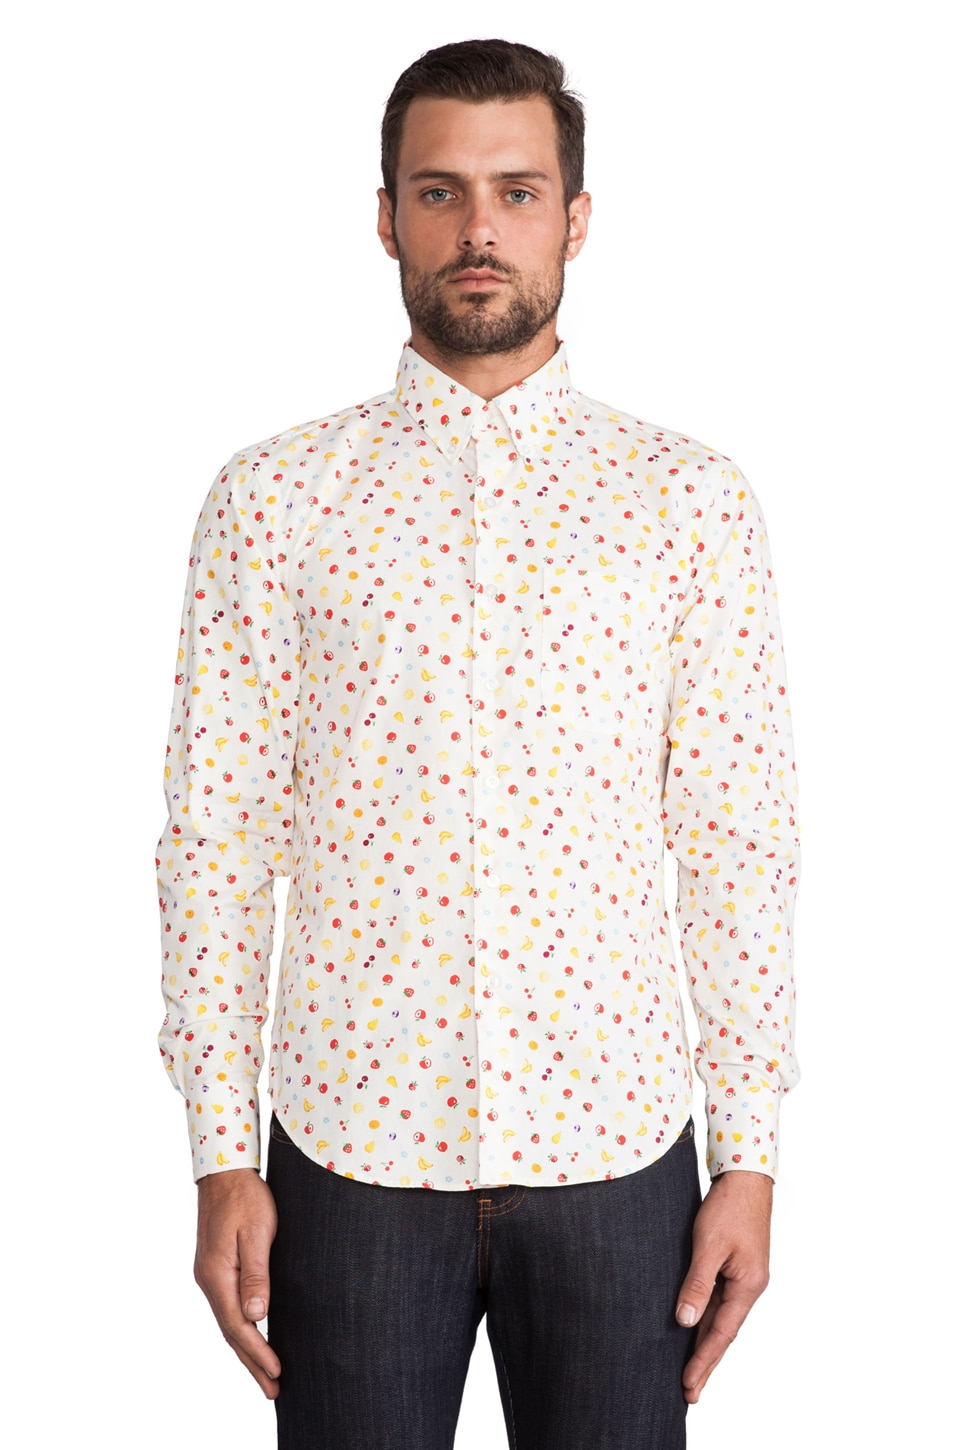 Naked & Famous Denim Fruit Regular Shirt in White